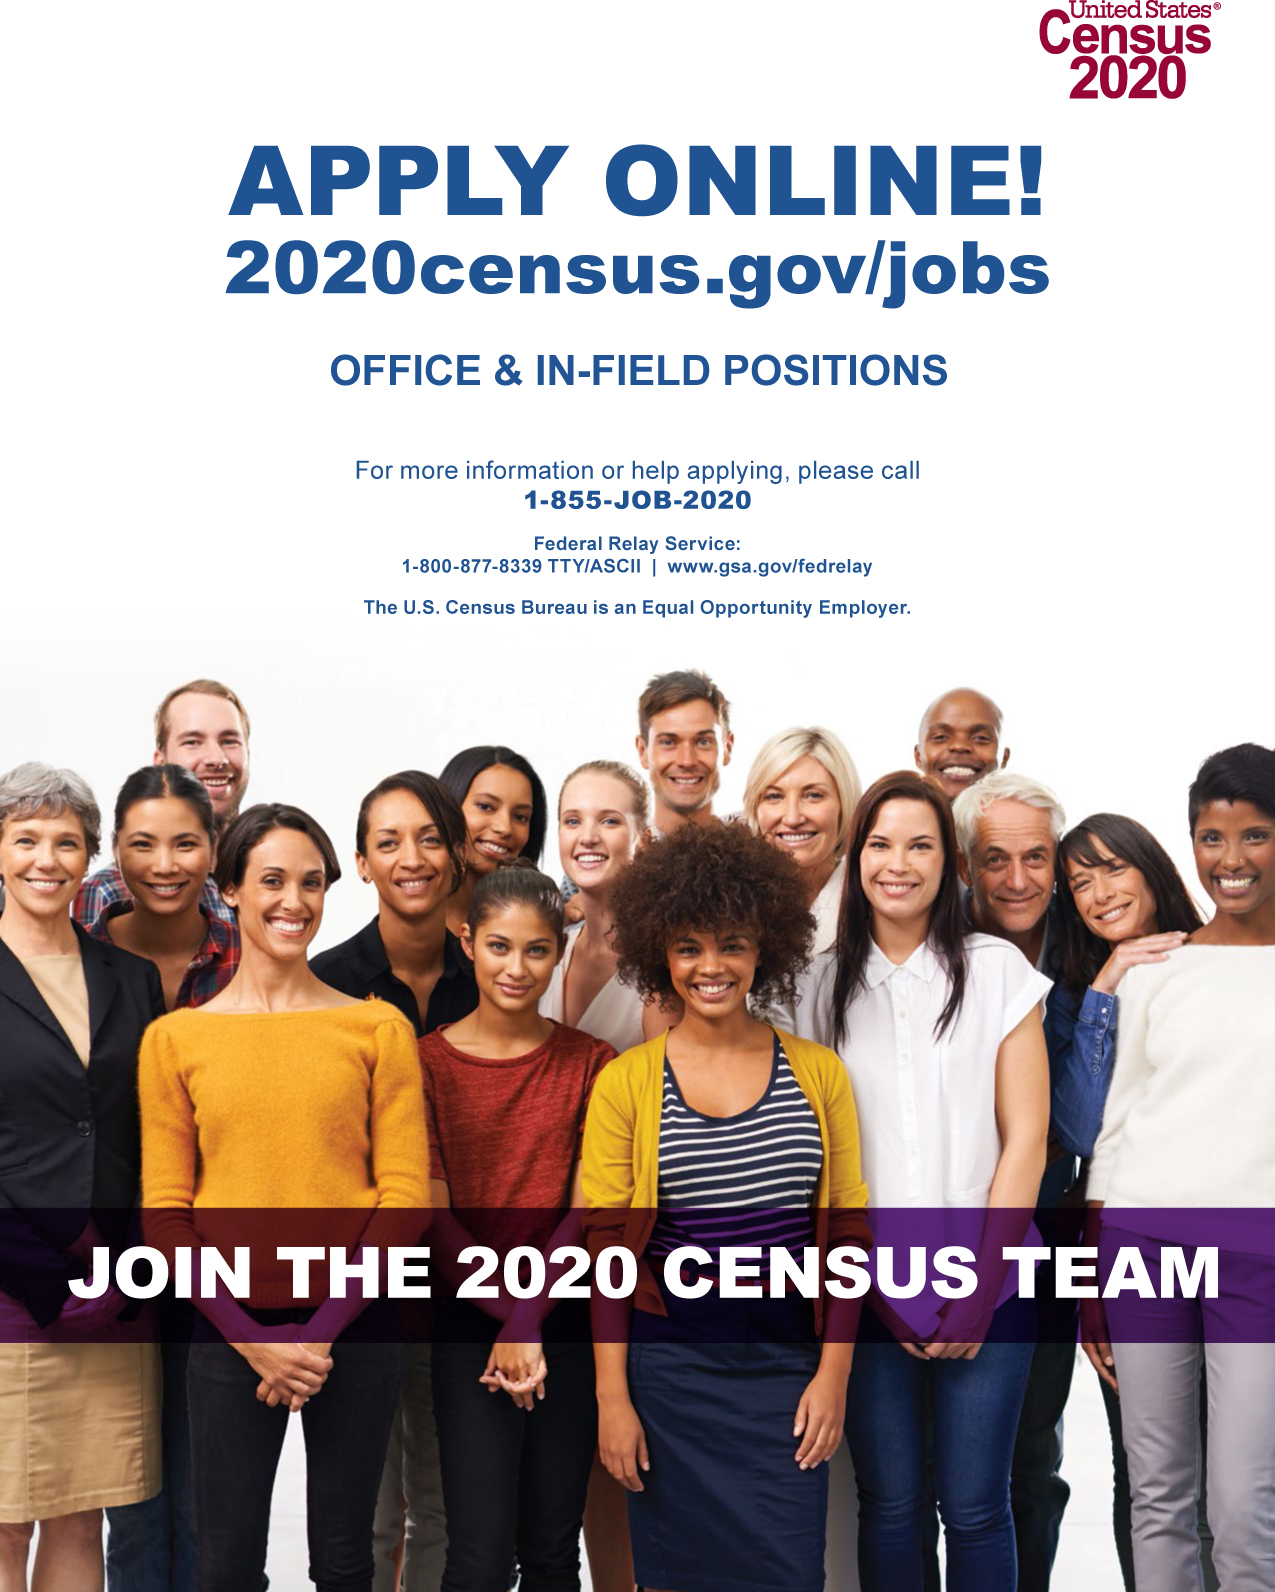 2020 Census Application Information form